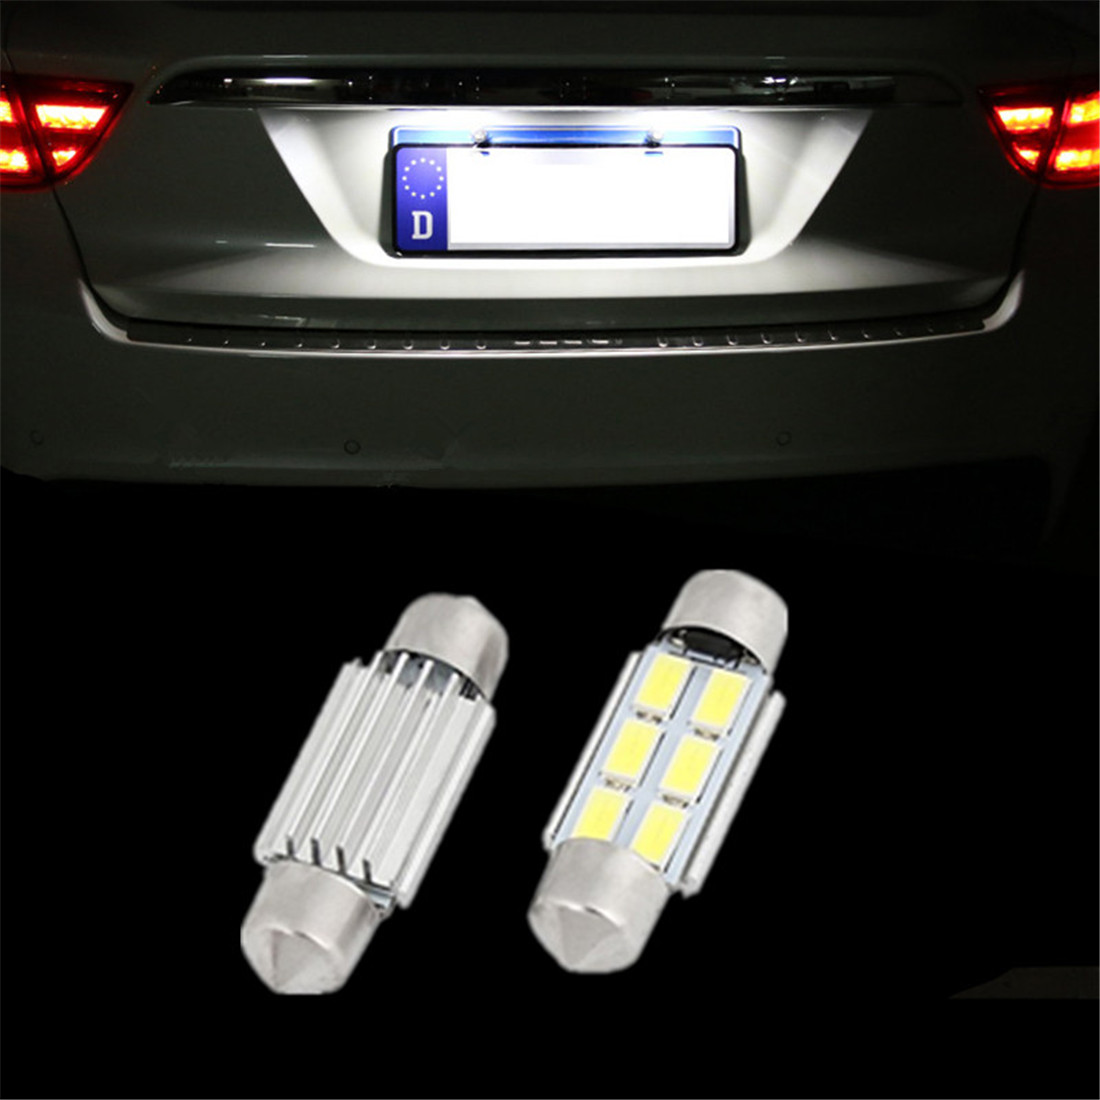 36mm No Error License Plate LED Light Bulbs Lamp C5W For Volkswagen VW JETTA GTI GOLF RABBIT MK4 MK5 PASSAT B5 B6 beler car grey interior dome reading light lamp itd 947 105 fit for vw golf jetta mk4 bora 1999 2004 passat b5 1998 2005